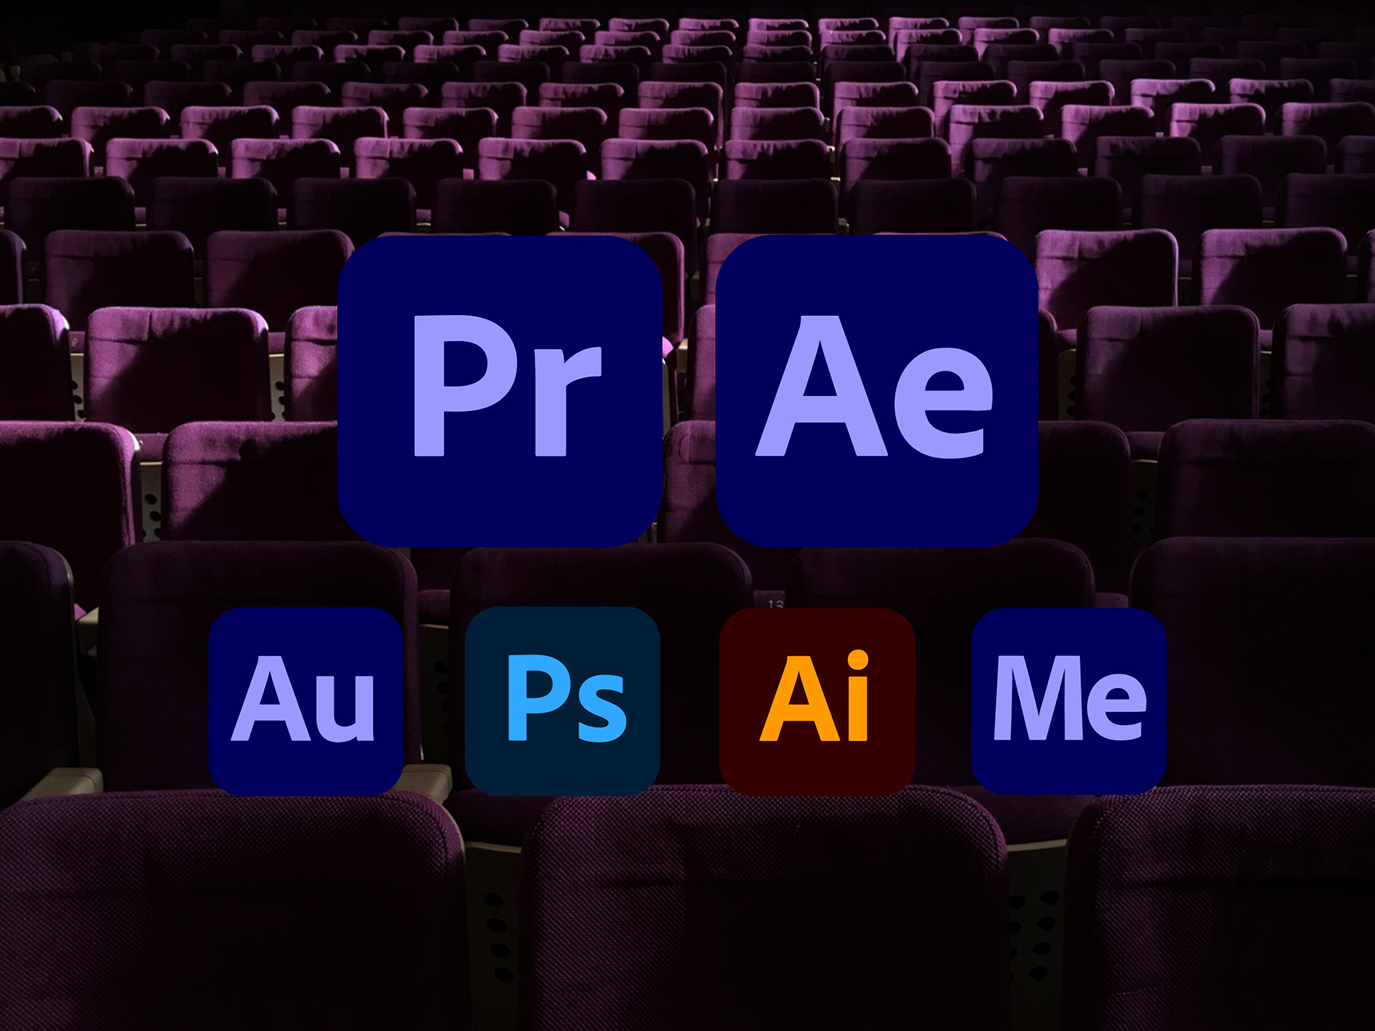 Work seamlessly with Adobe apps